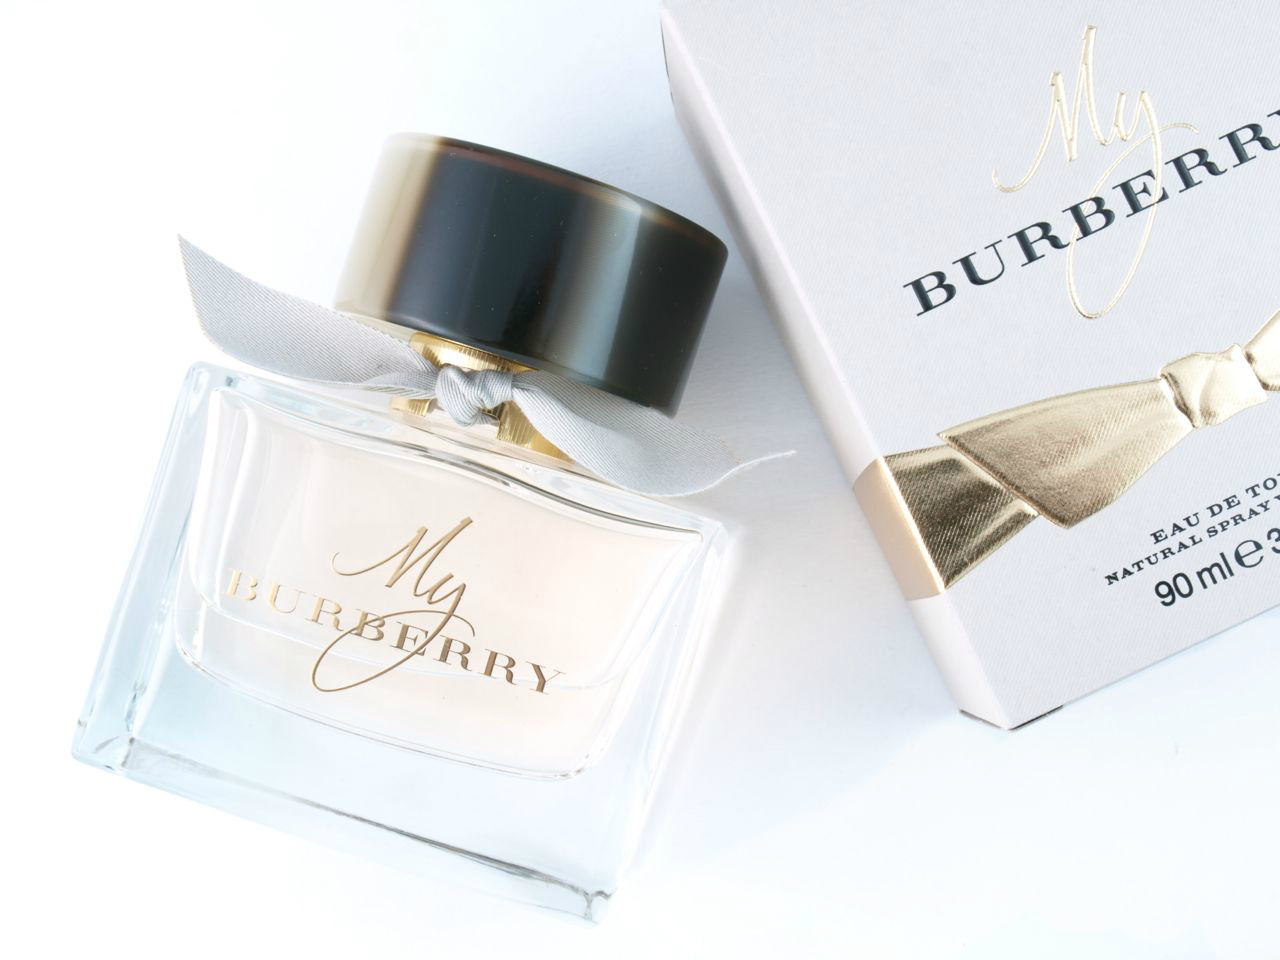 Burberry My Burberry Eau de Toilette: Review